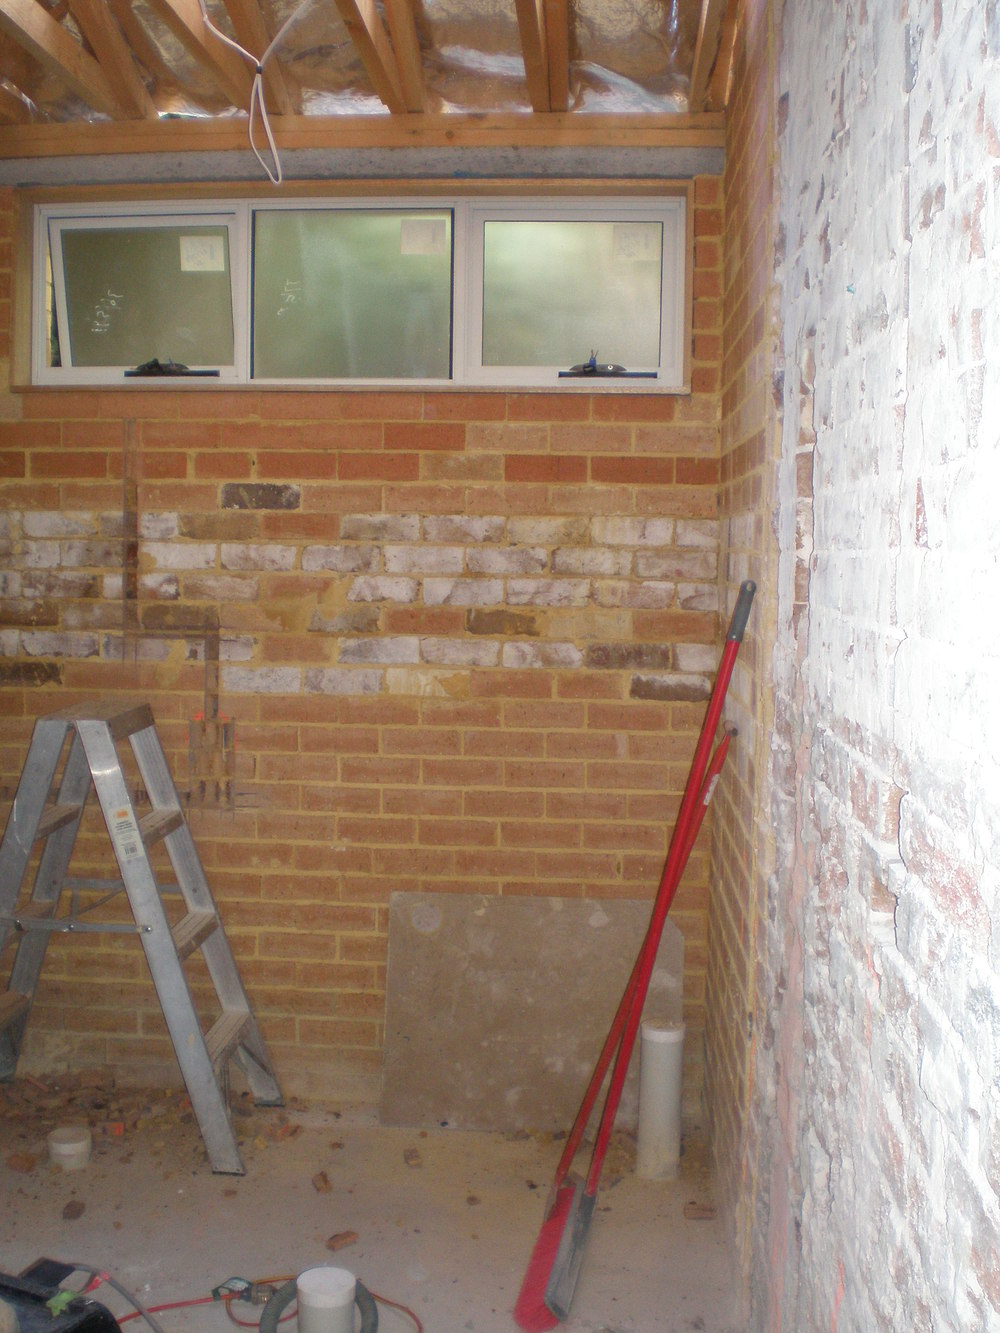 Bathroom Renovation (before) - Chris & Bill, Como